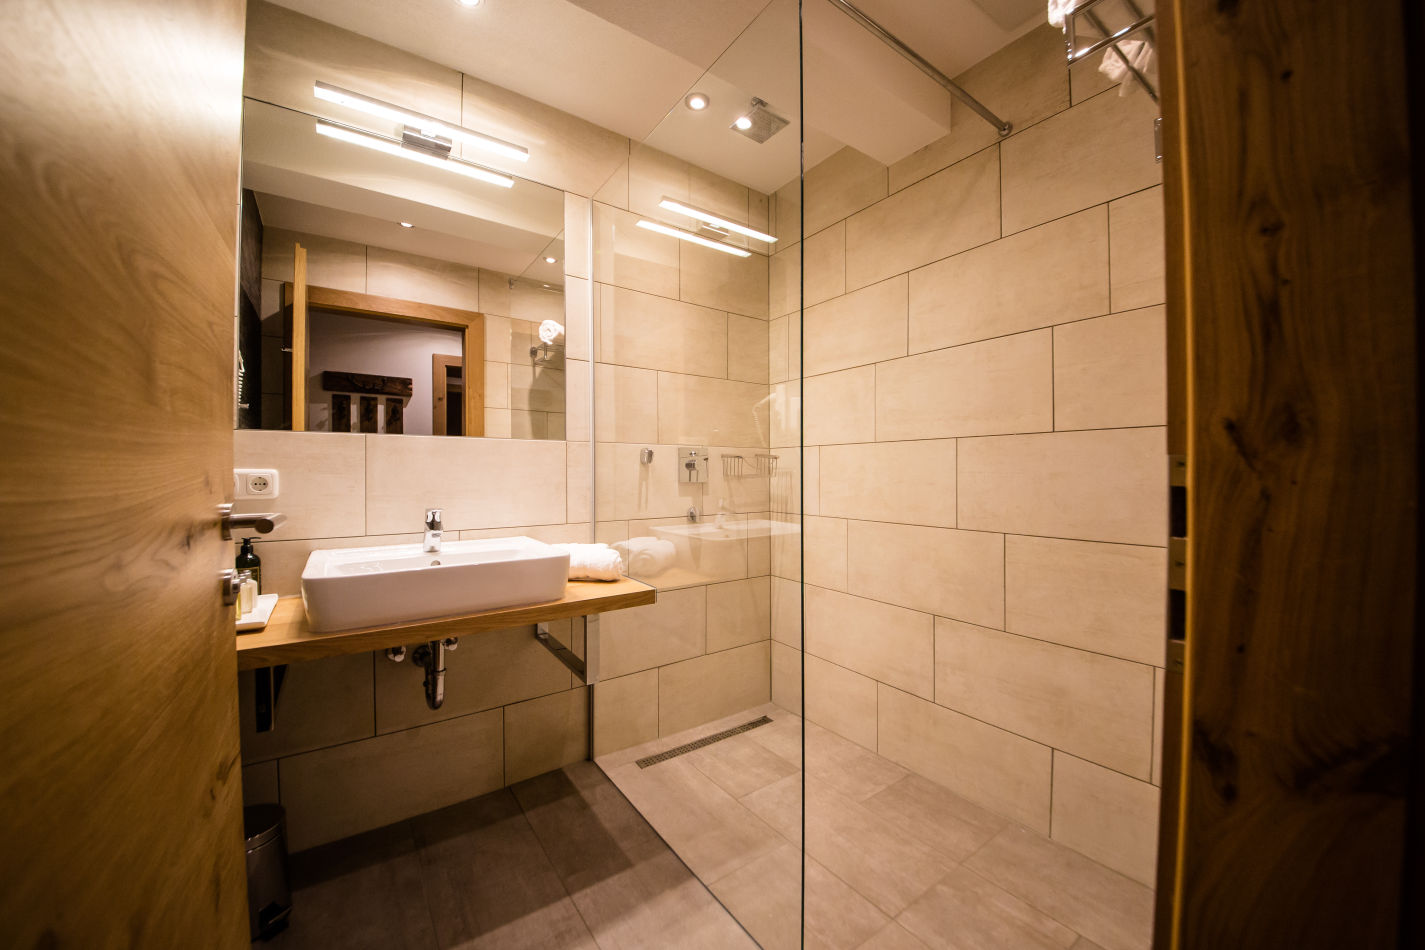 53-bathroom-image-3